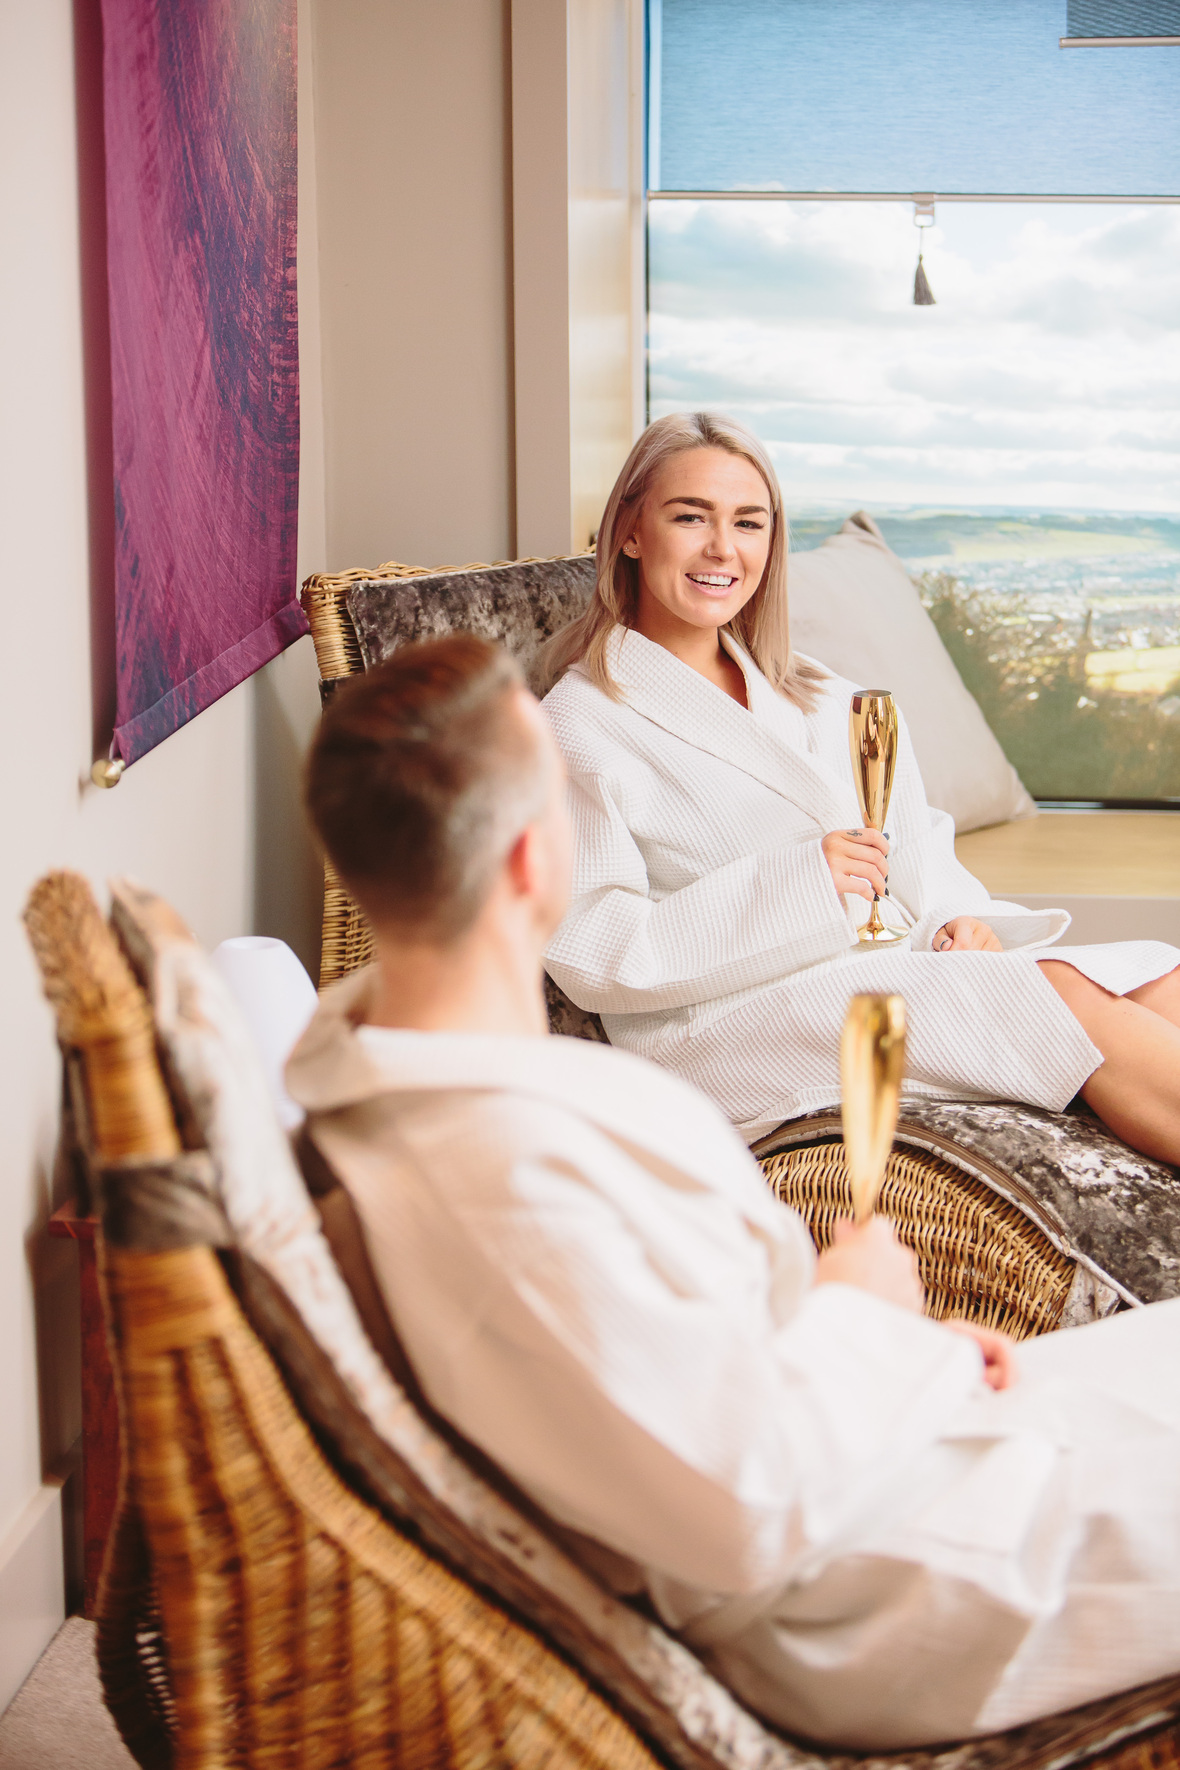 Spa Package 1: Something Speciial